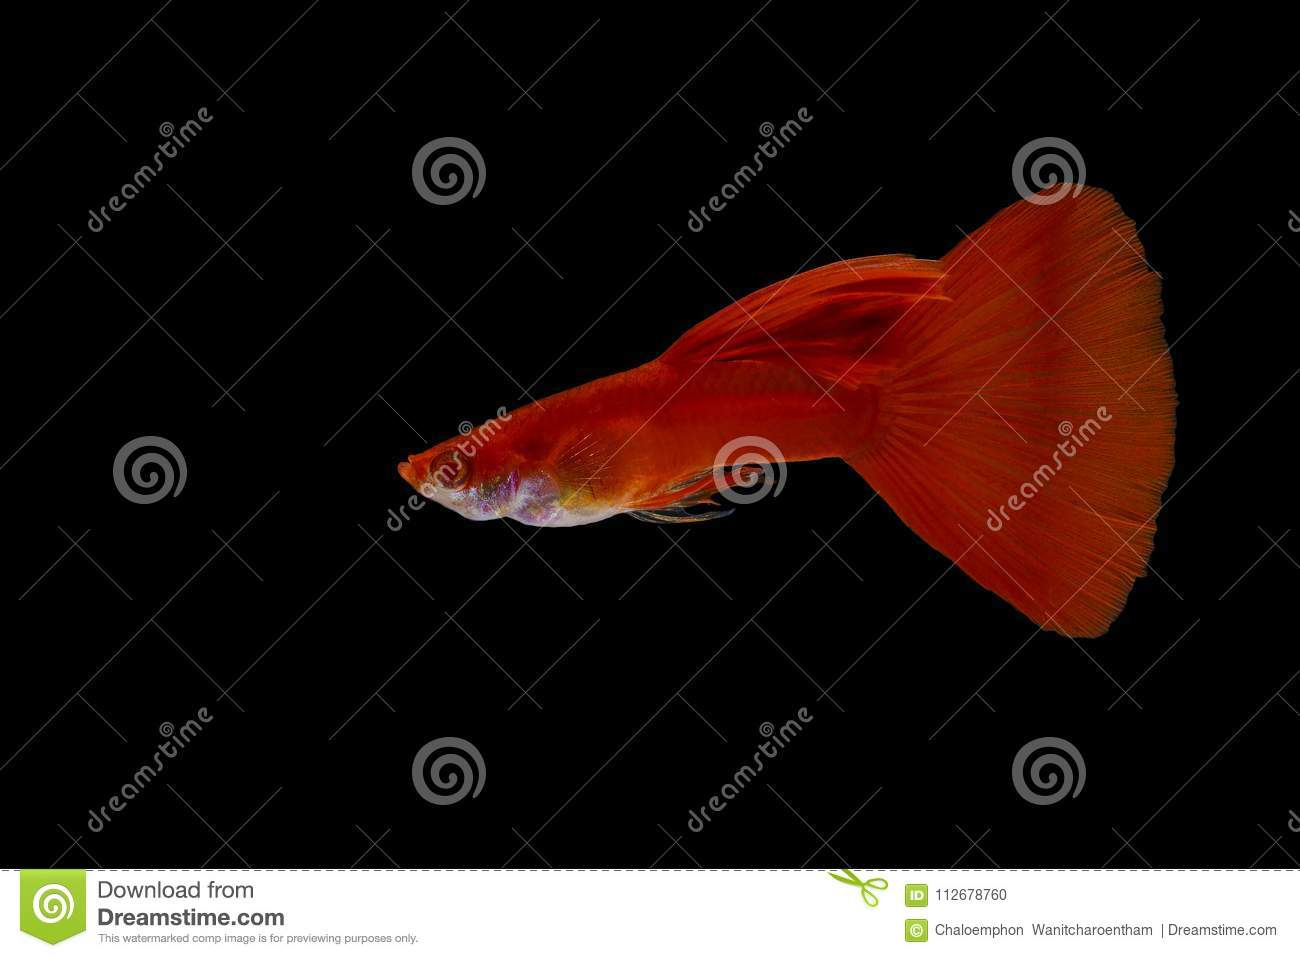 A Guppy Fish With A Bright Red Color On A Black Background Isole ...